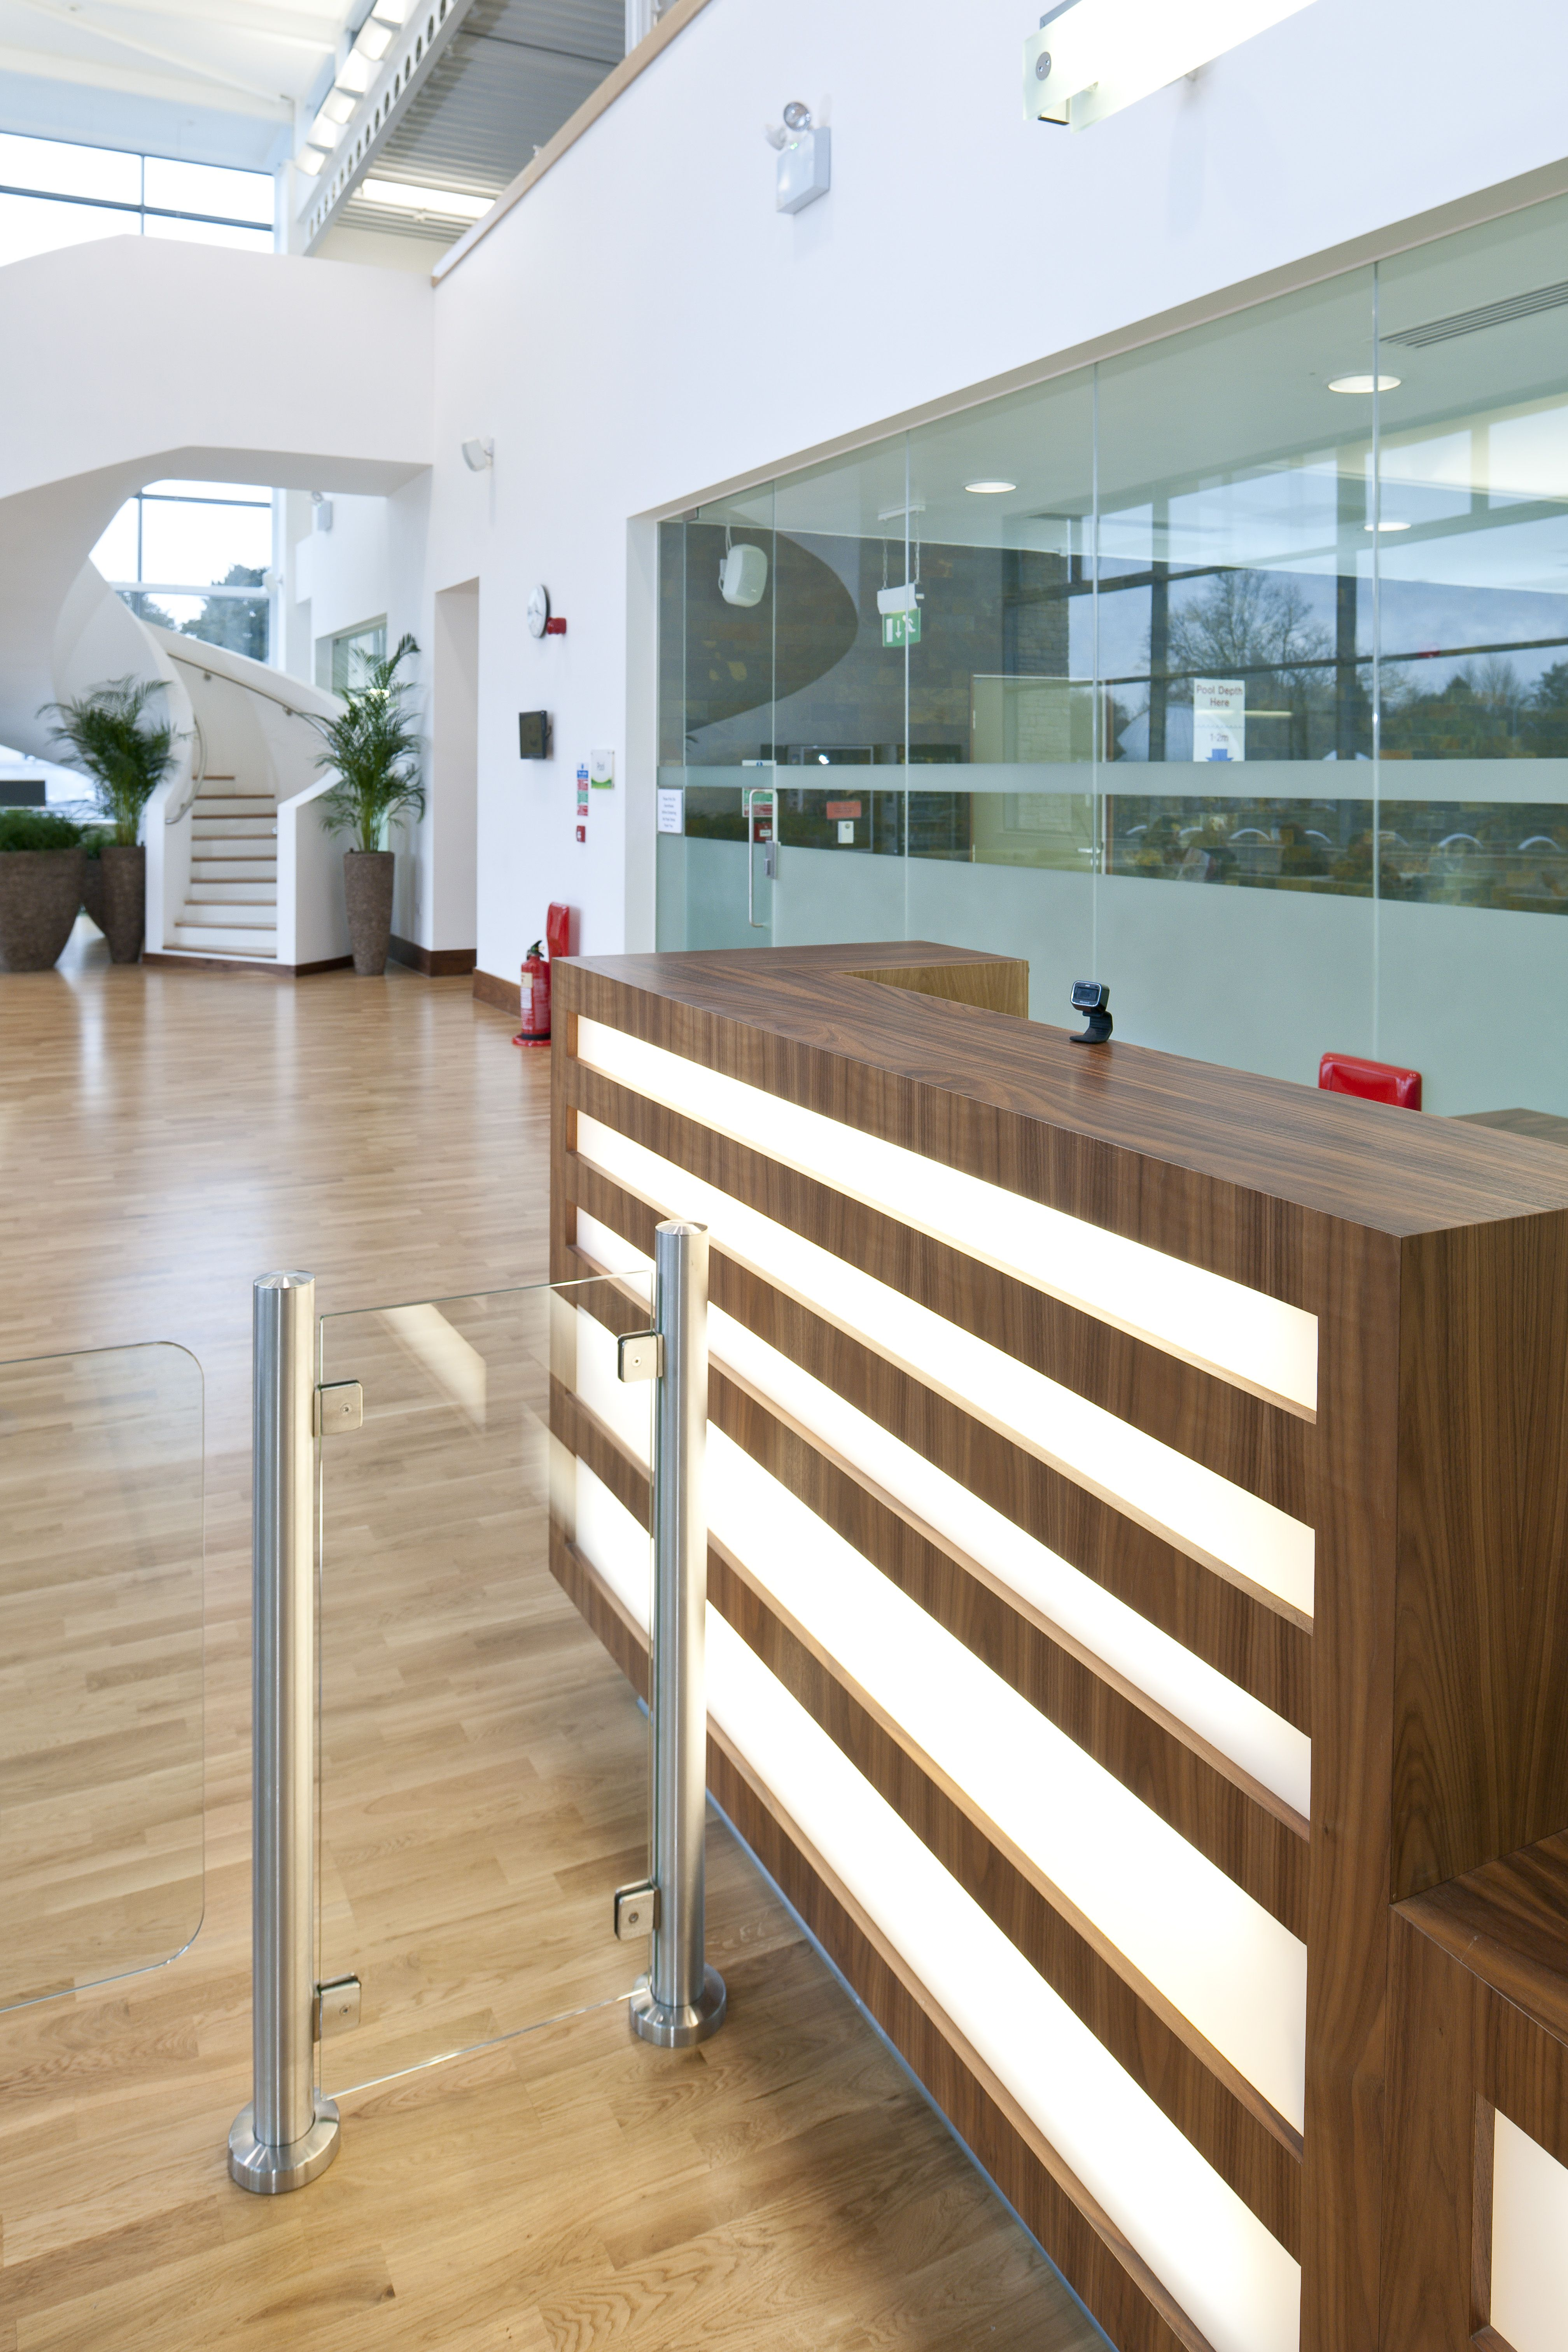 The Roger Bettles Sports Centre University Of Leicester Entrance Hall Reception College